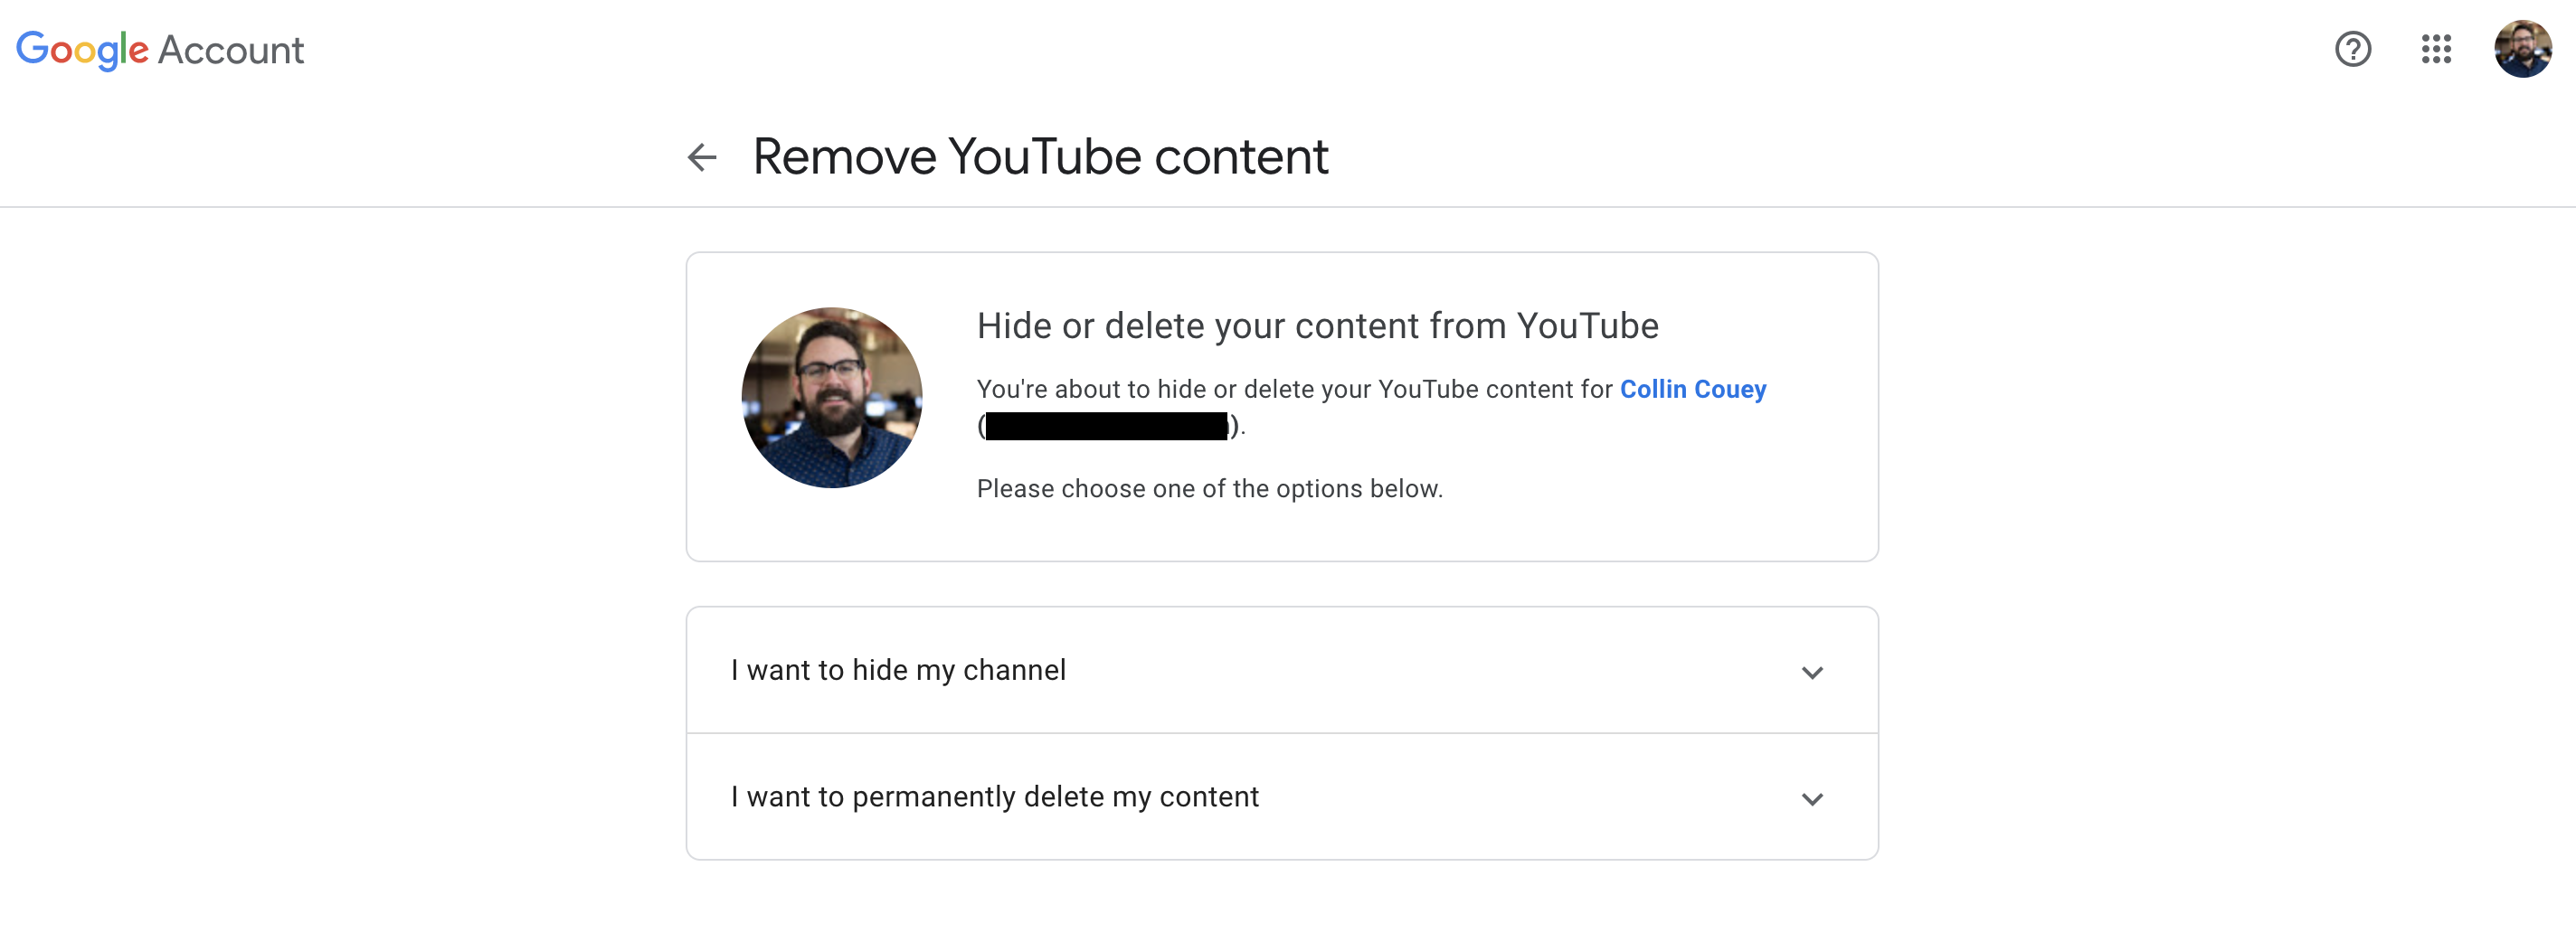 A screenshot of YouTube's hide or delete content page